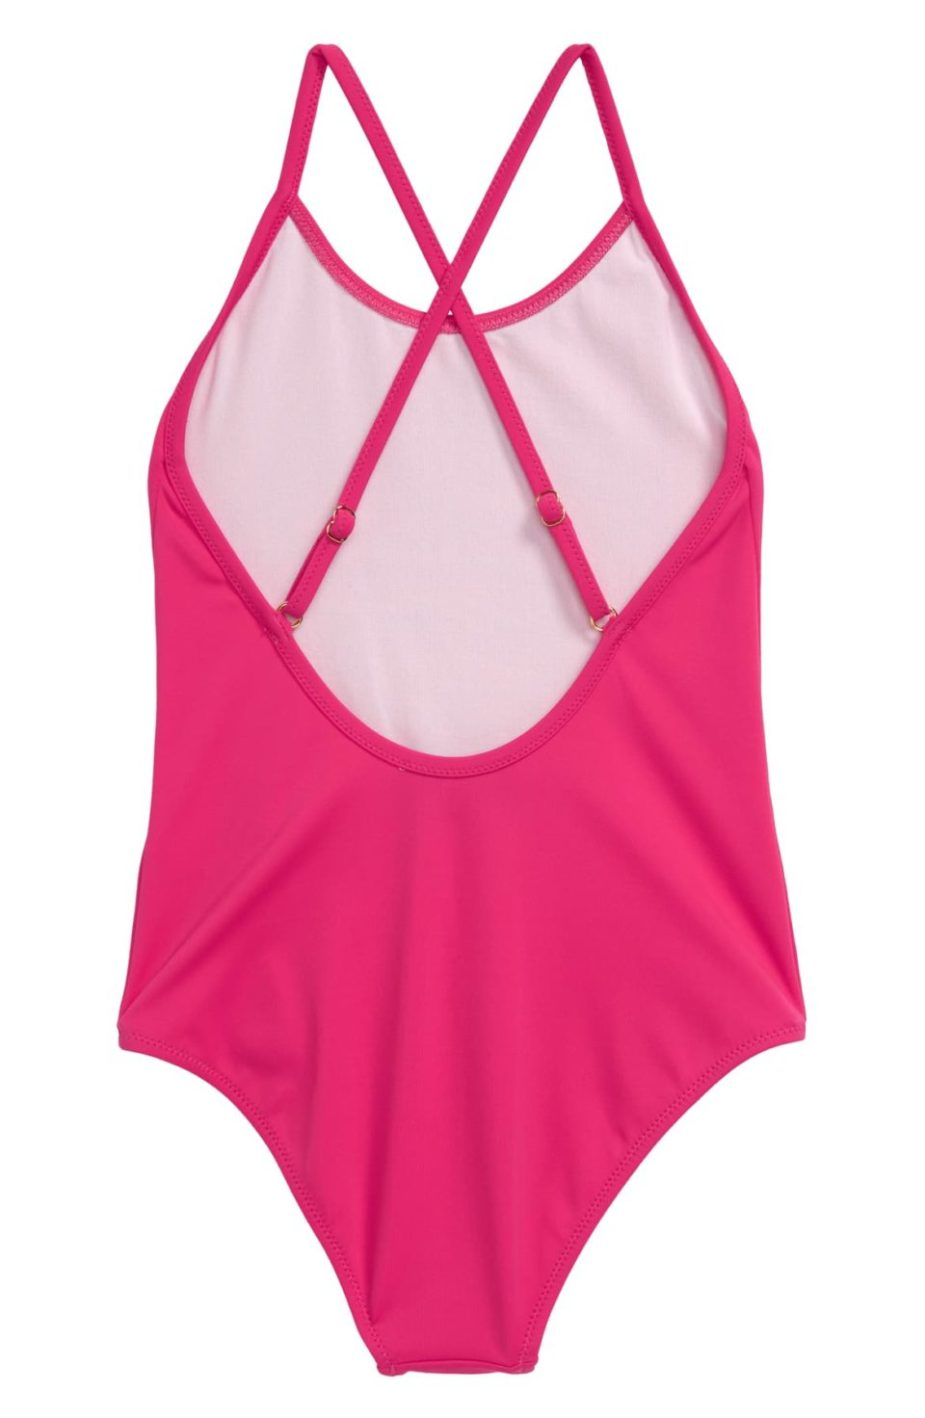 VERSACE-Hot-Fuchsia-Pink-Girls-One-Piece-Swimsuit-CharmPosh-2